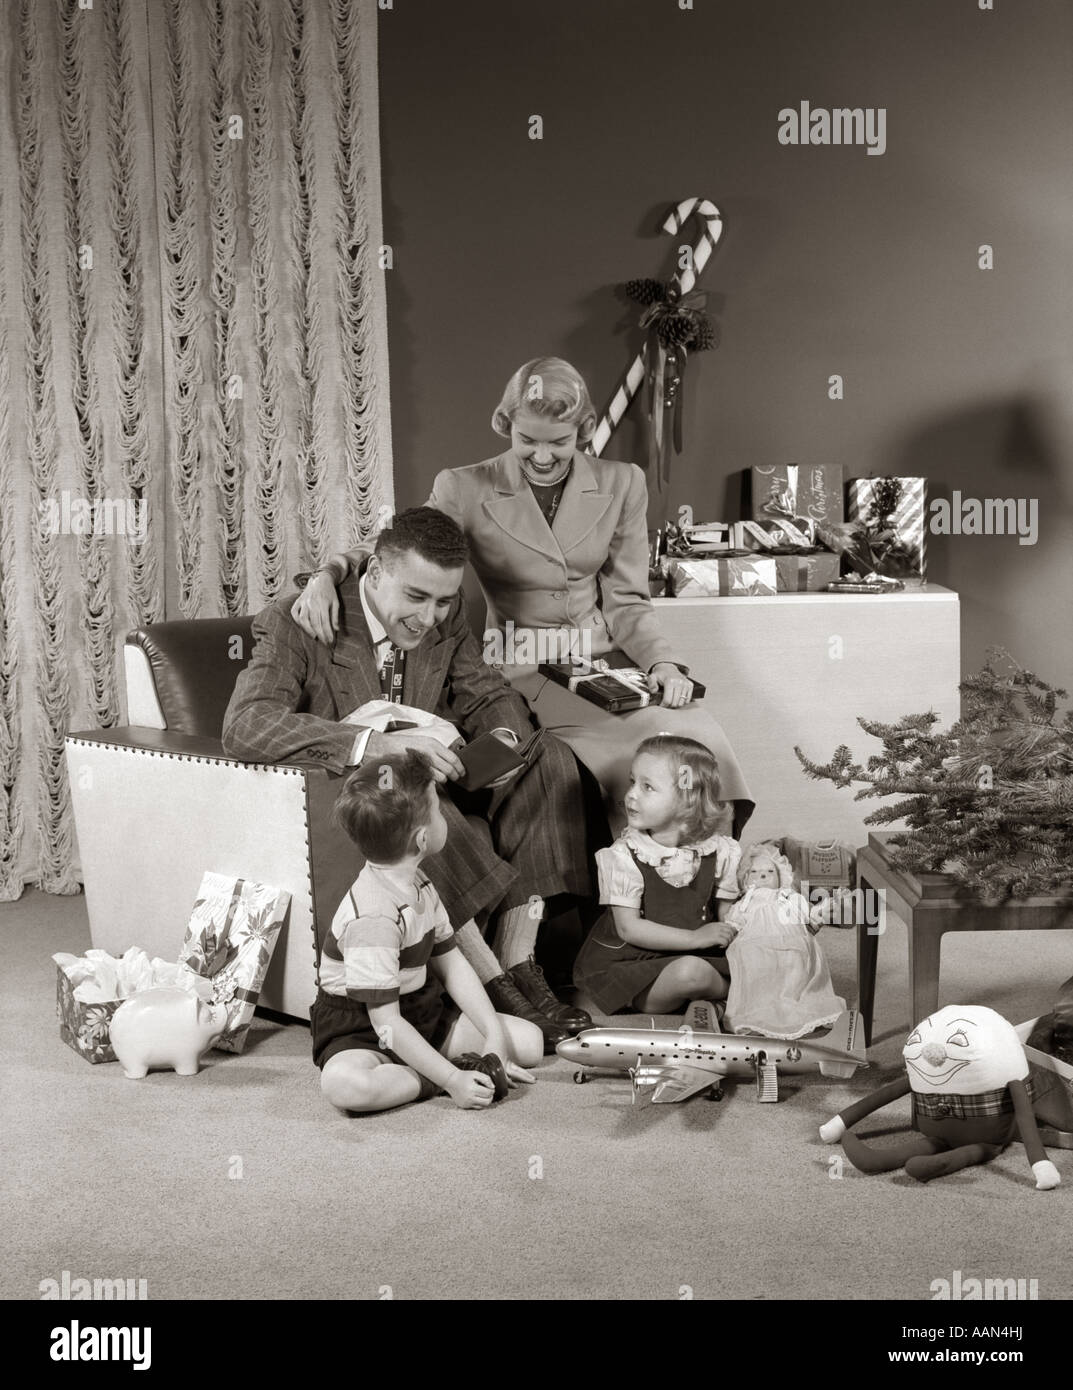 1940s 1950s family opening christmas presents stock image - 1950s Christmas